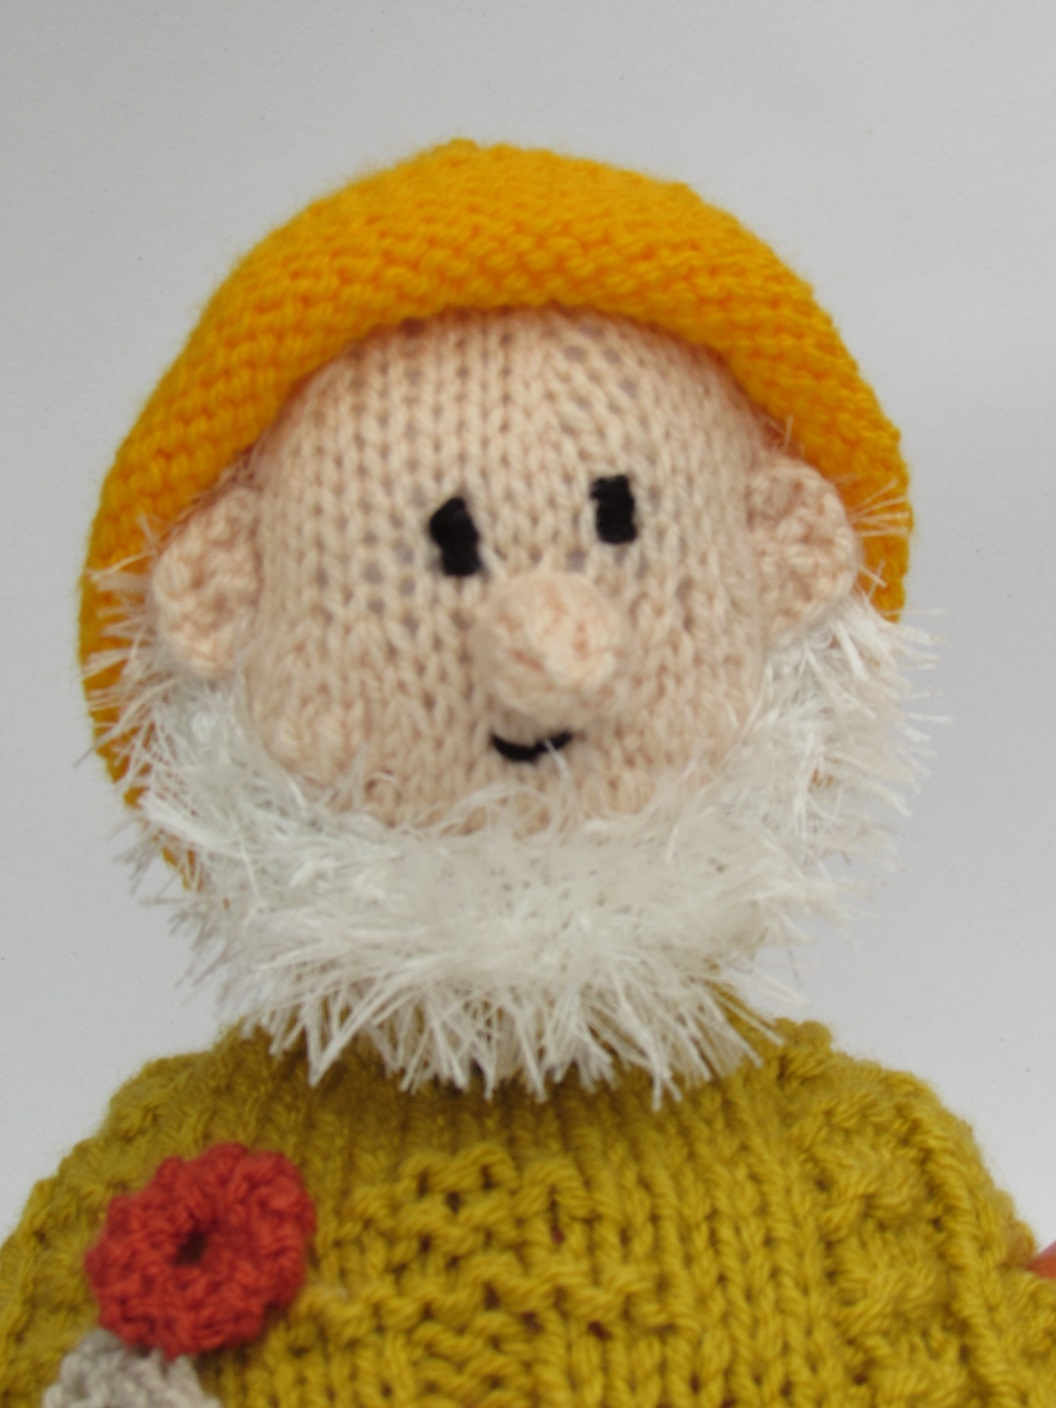 Cornish Fisherman knitting pattern